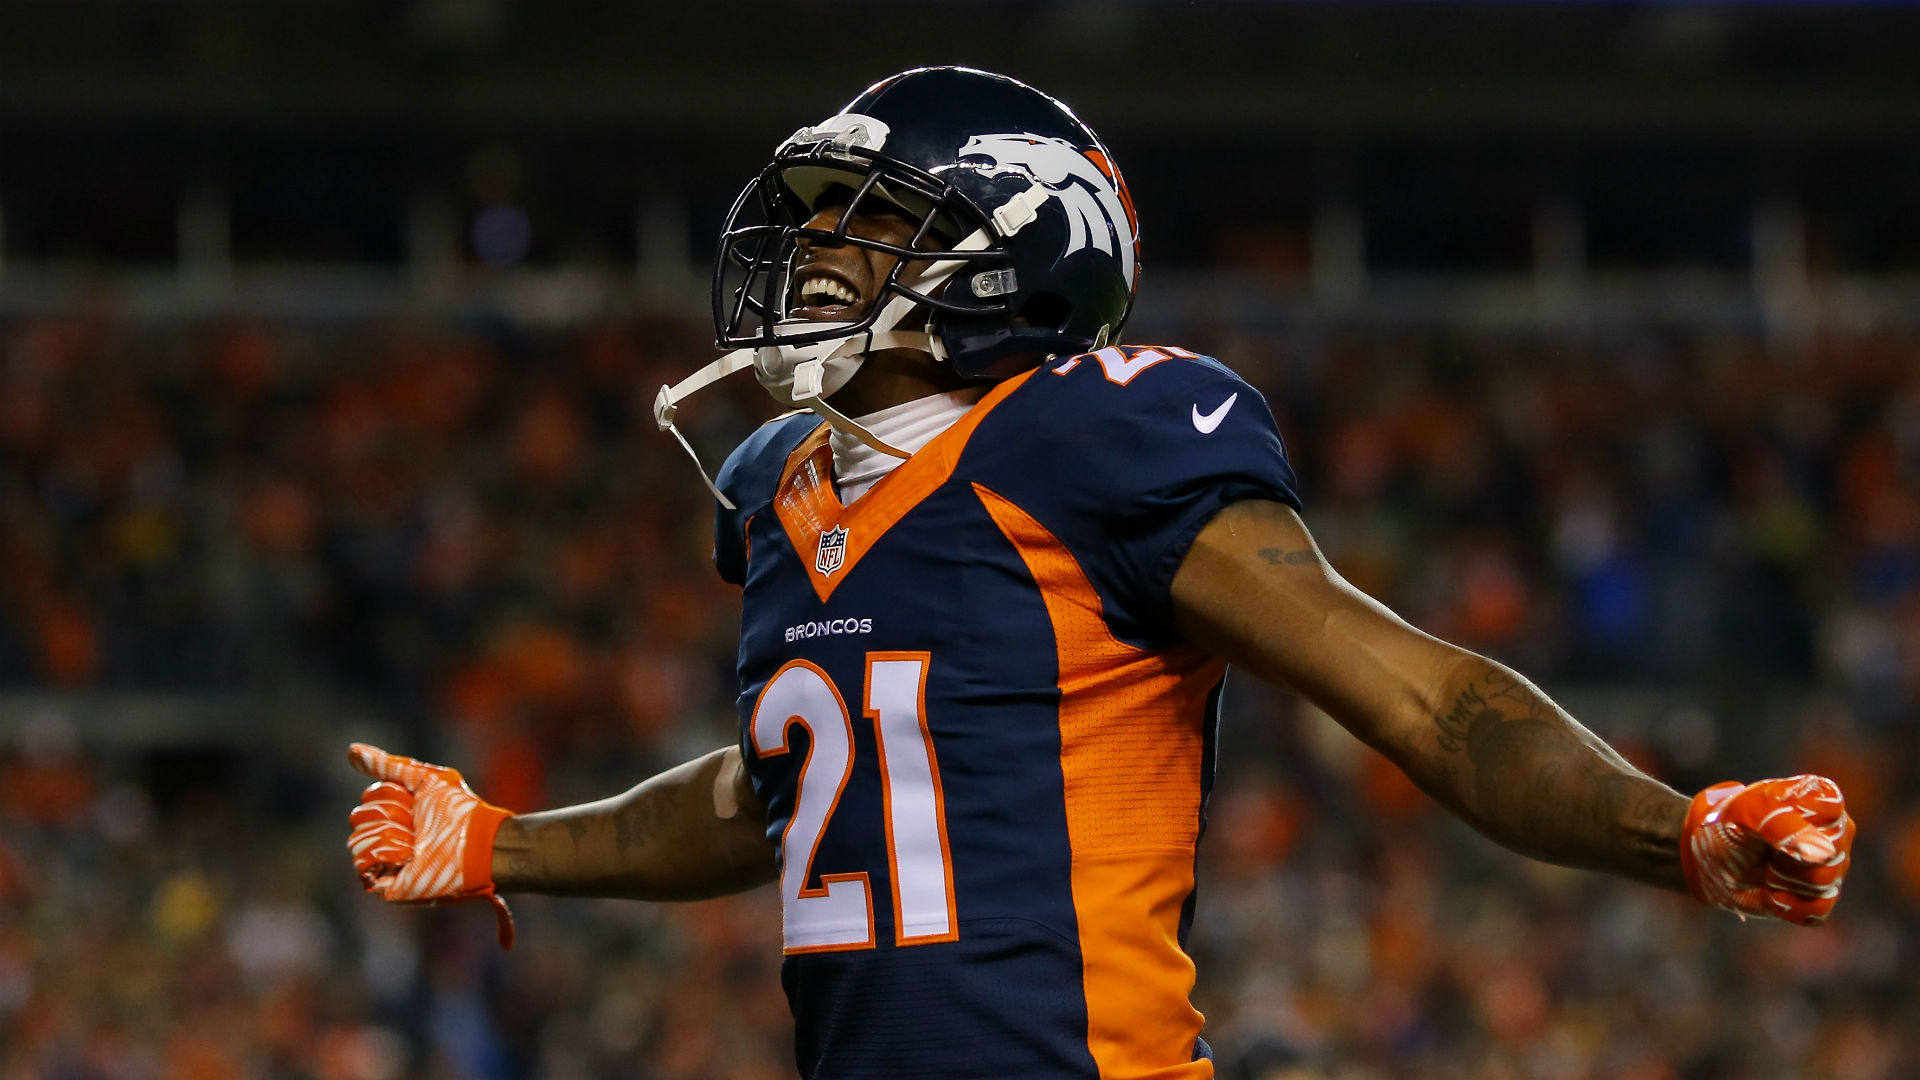 Aqib Talib to miss White House ceremony after gunshot incident